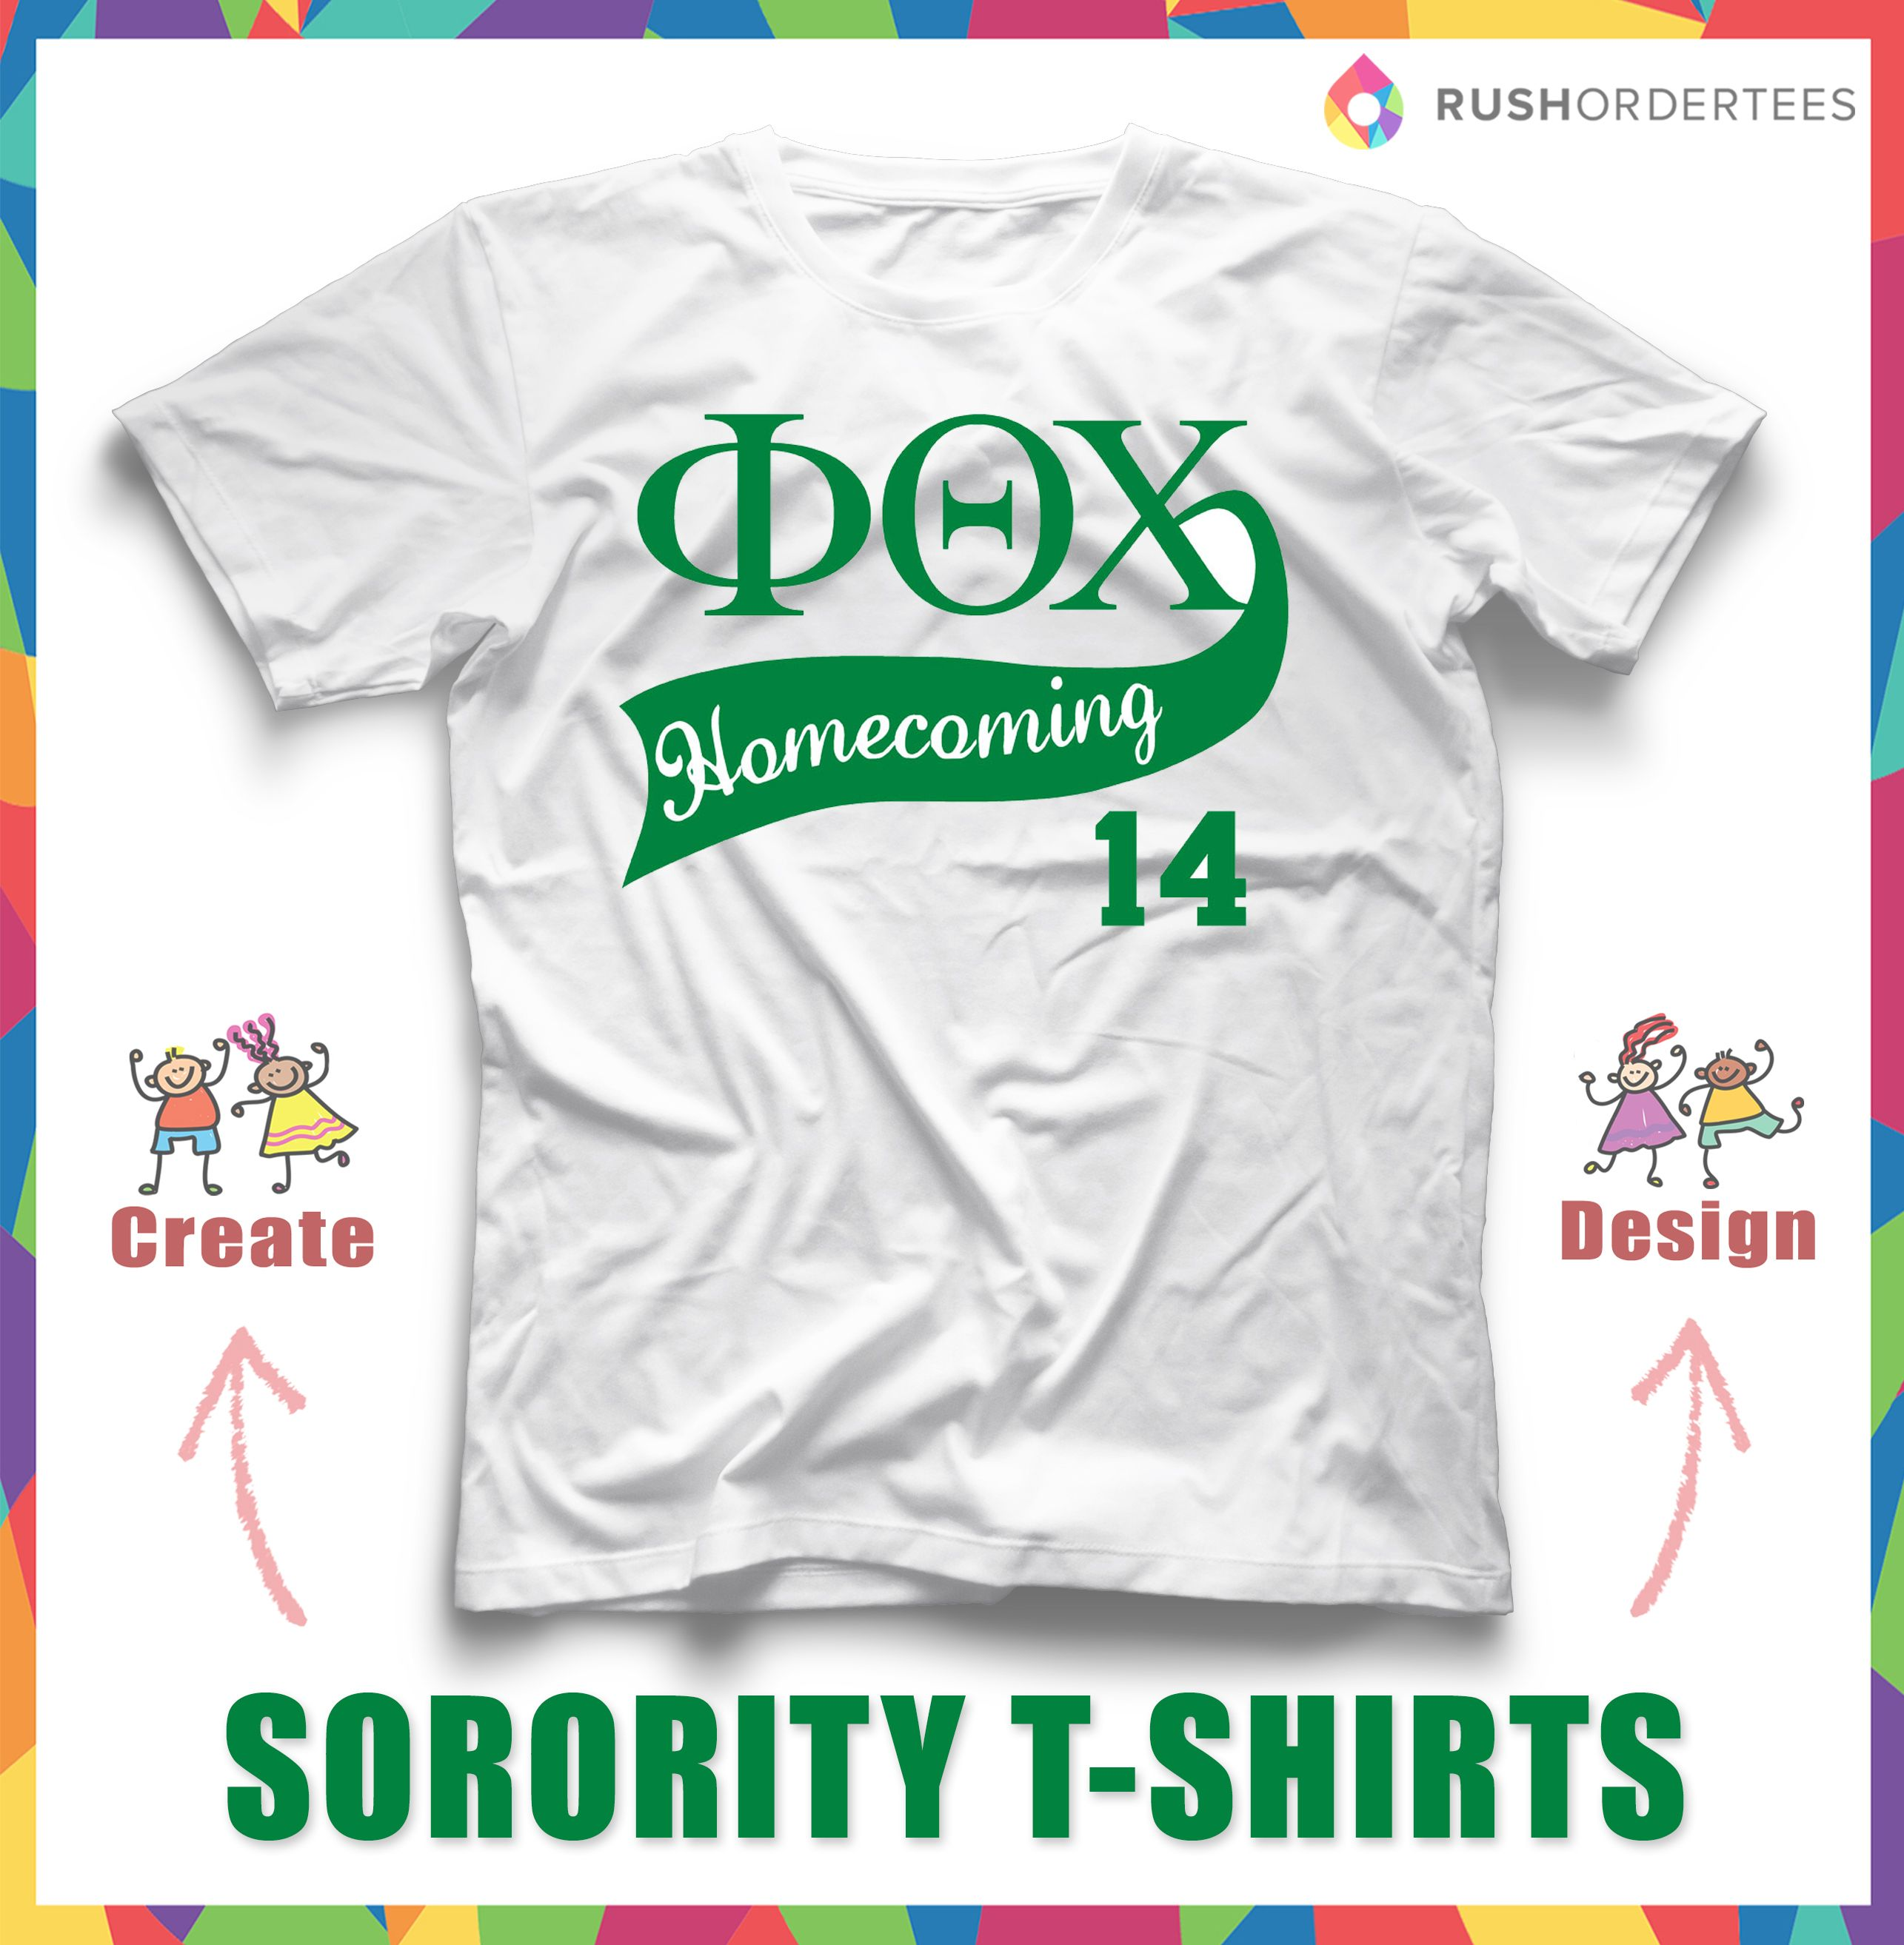 cool sorority homecoming tshirt design unite together by wearing your own sorority customtshirt - Homecoming T Shirt Design Ideas